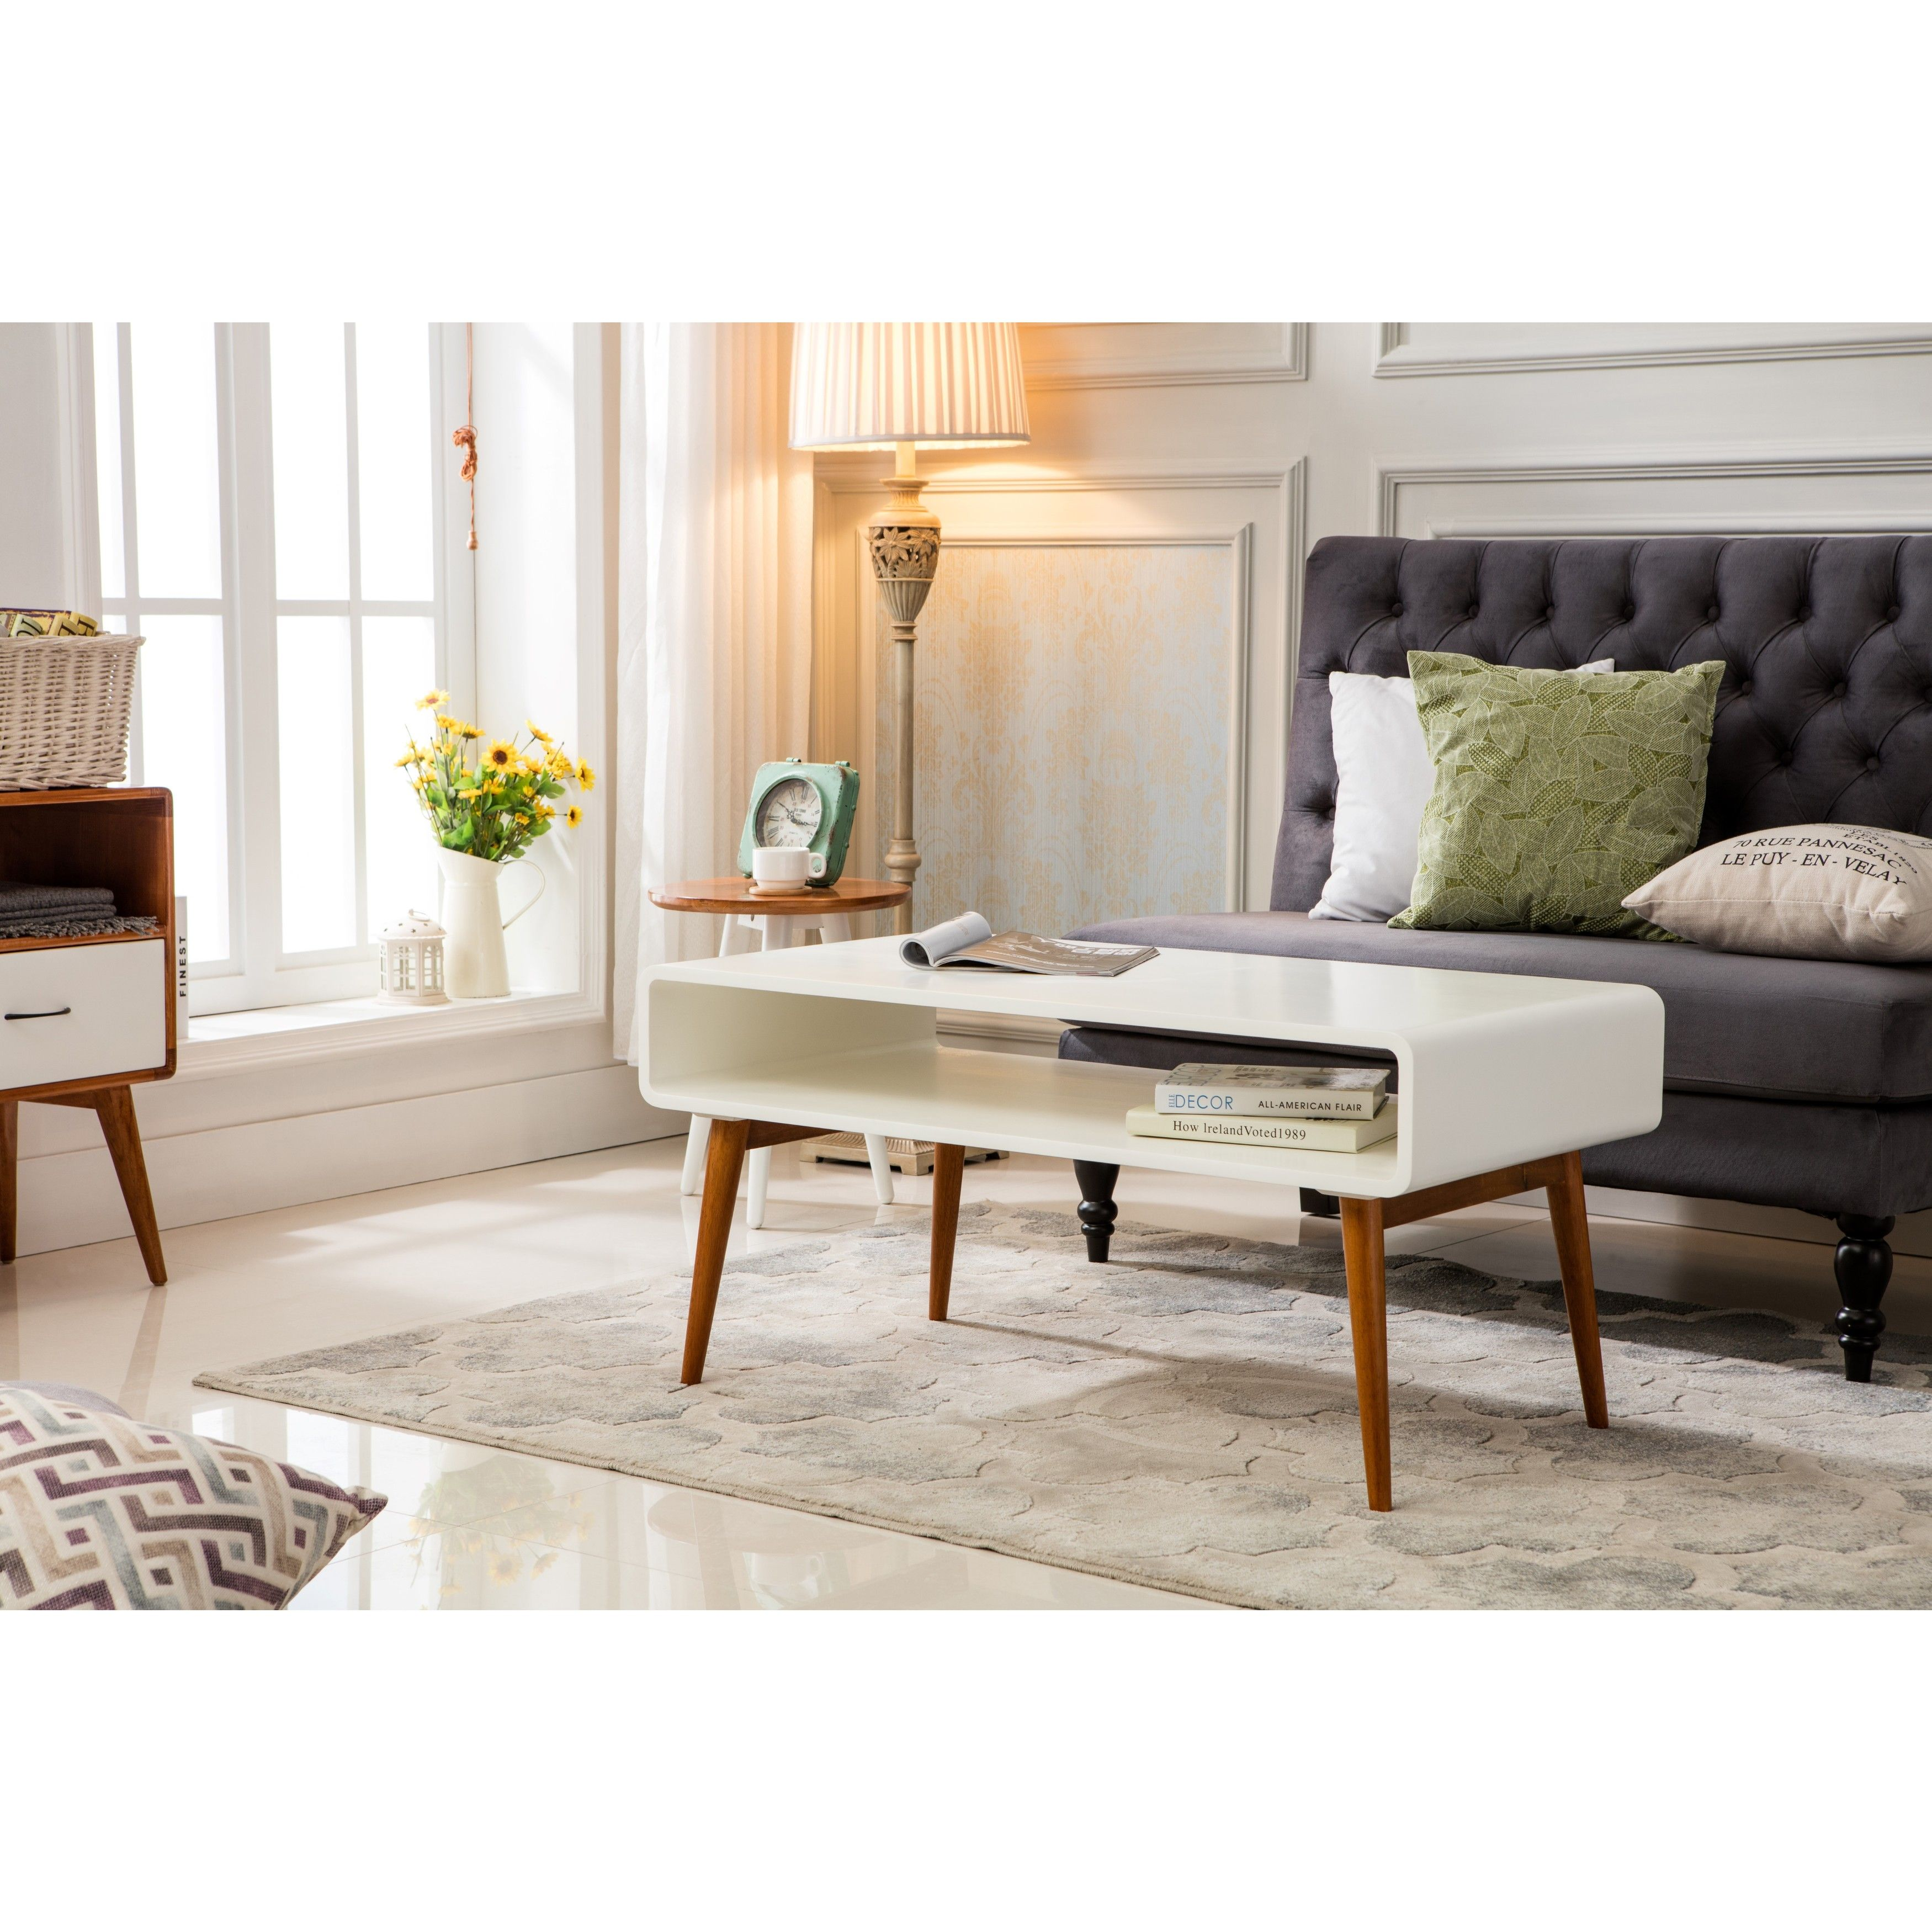 Buy modern coffee table from Overstock for everyday discount